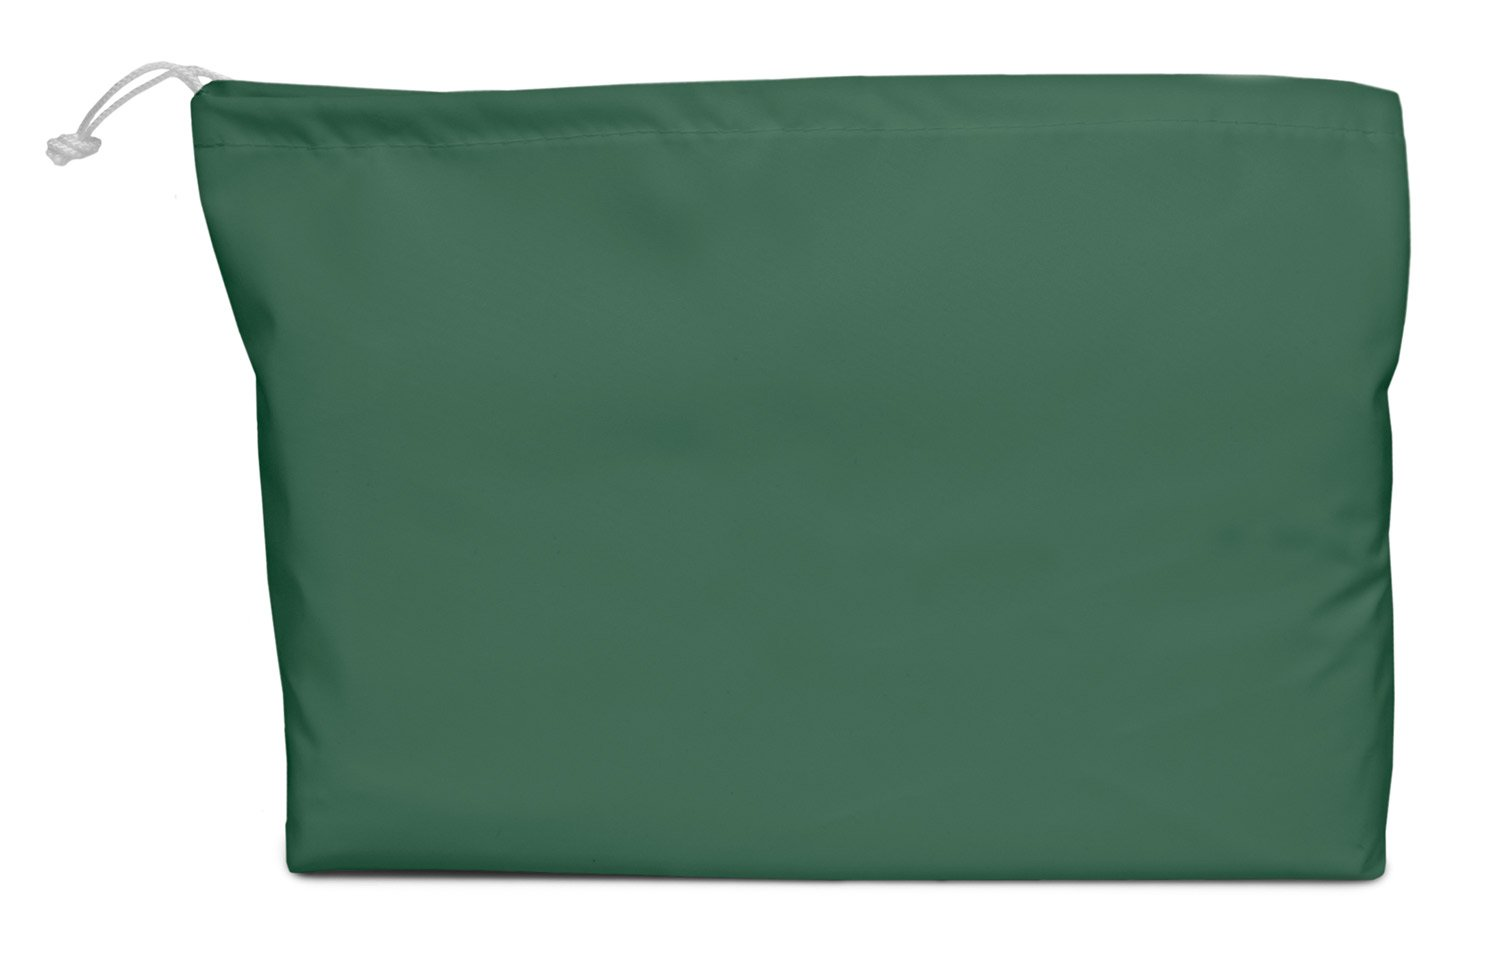 KoverRoos Weathermax 62350 2-Seat/Loveseat Cover, 54-Inch Width by 38-Inch Diameter by 31-Inch Height, Forest Green by KOVERROOS (Image #2)